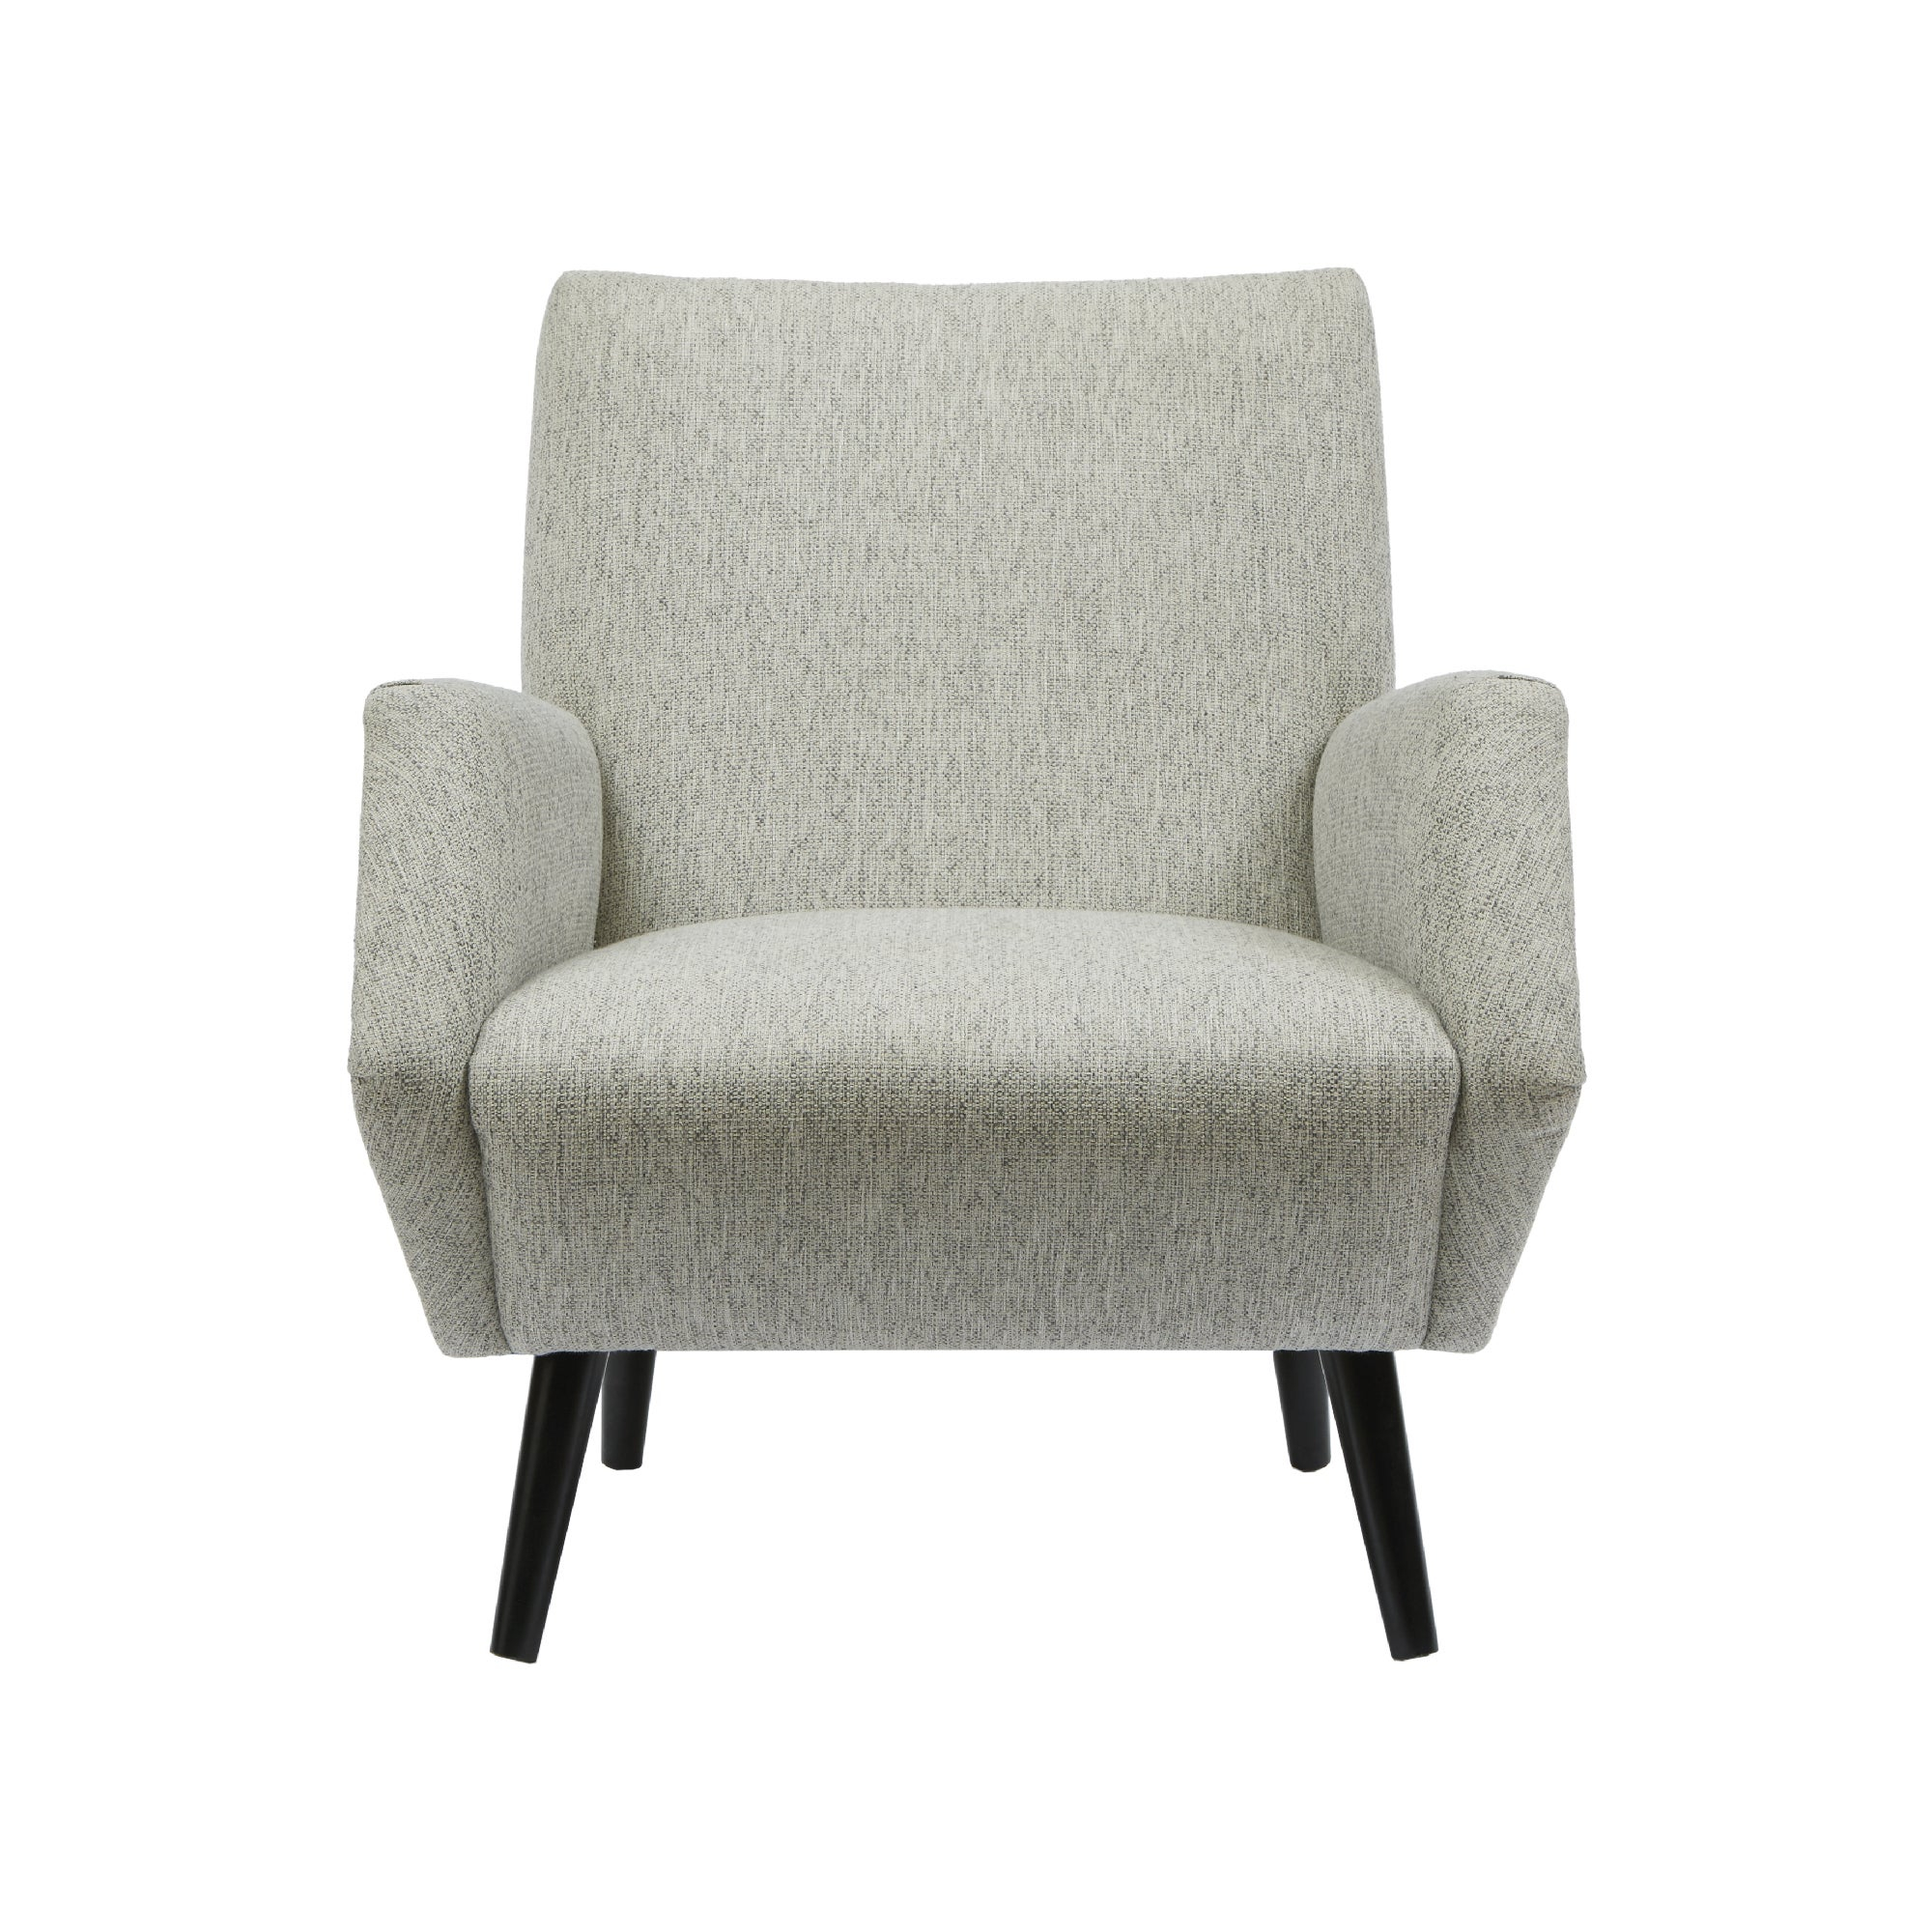 Ink+Ivy Maryanne Grey Accent Chair   Free Shipping Today   Overstock    23614064